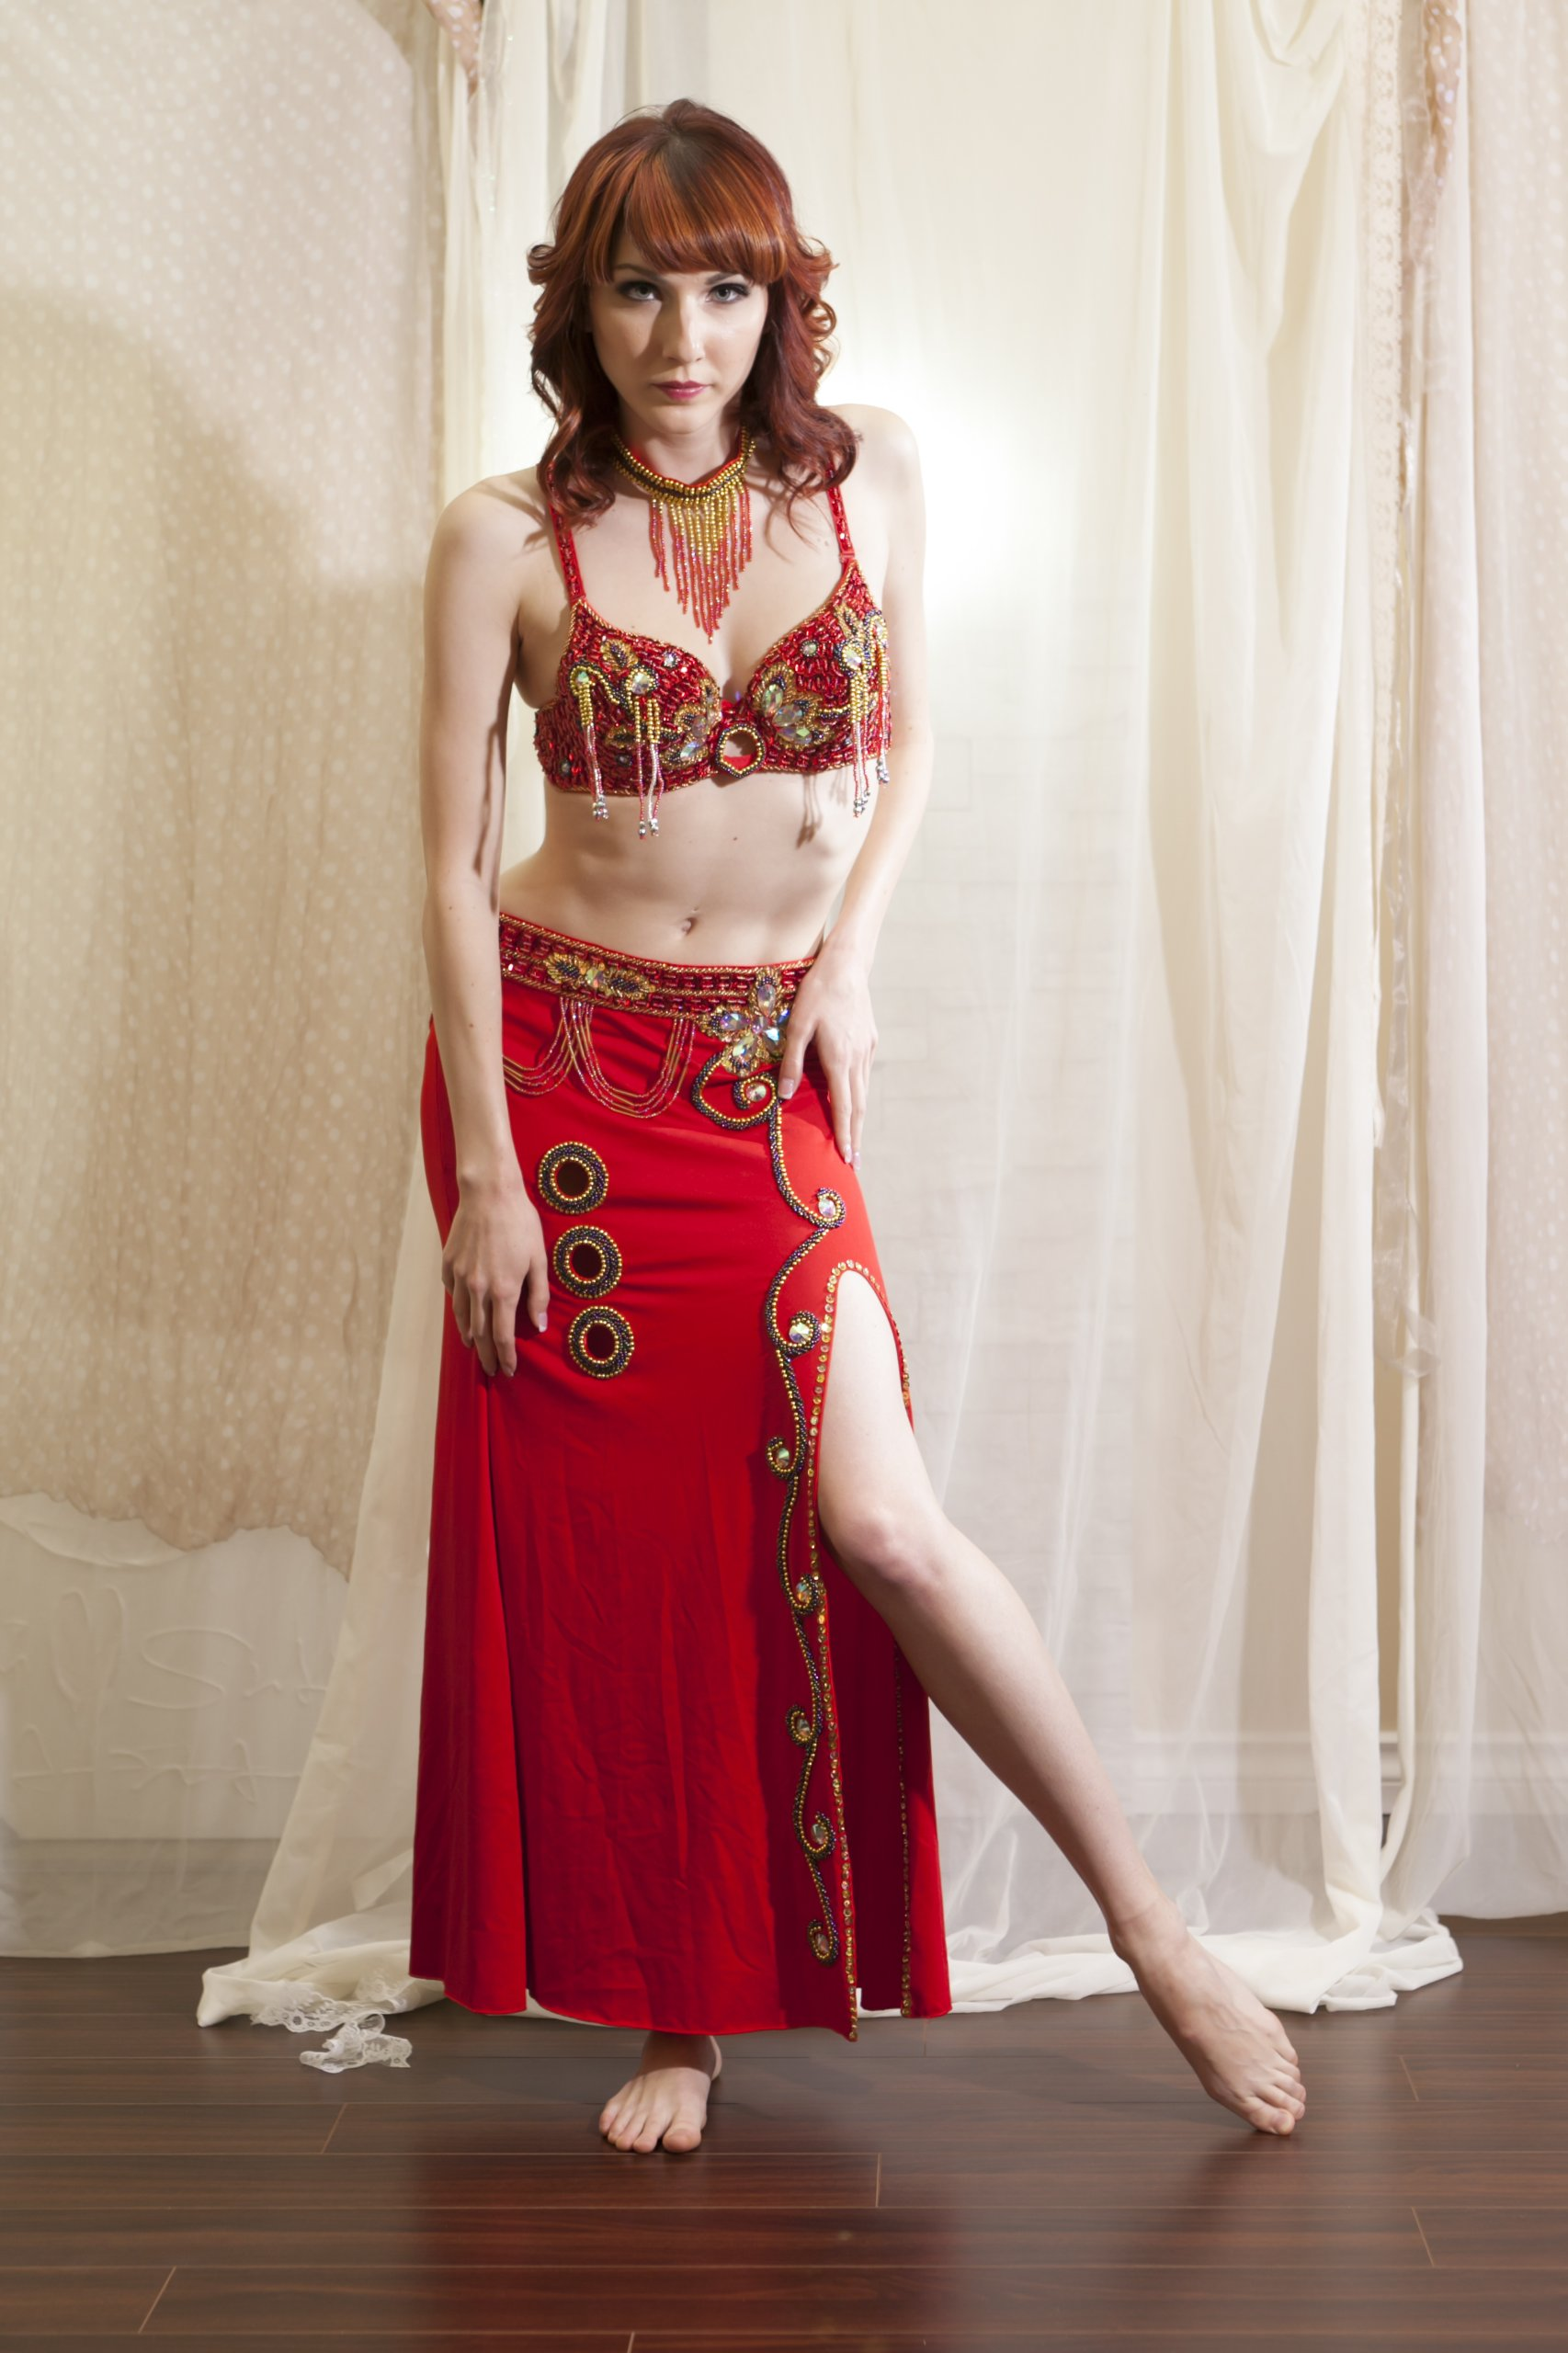 Belly Dance Bra Top & Stretchy Skirt Costume Set --Red 36A by Belly Dance Costume